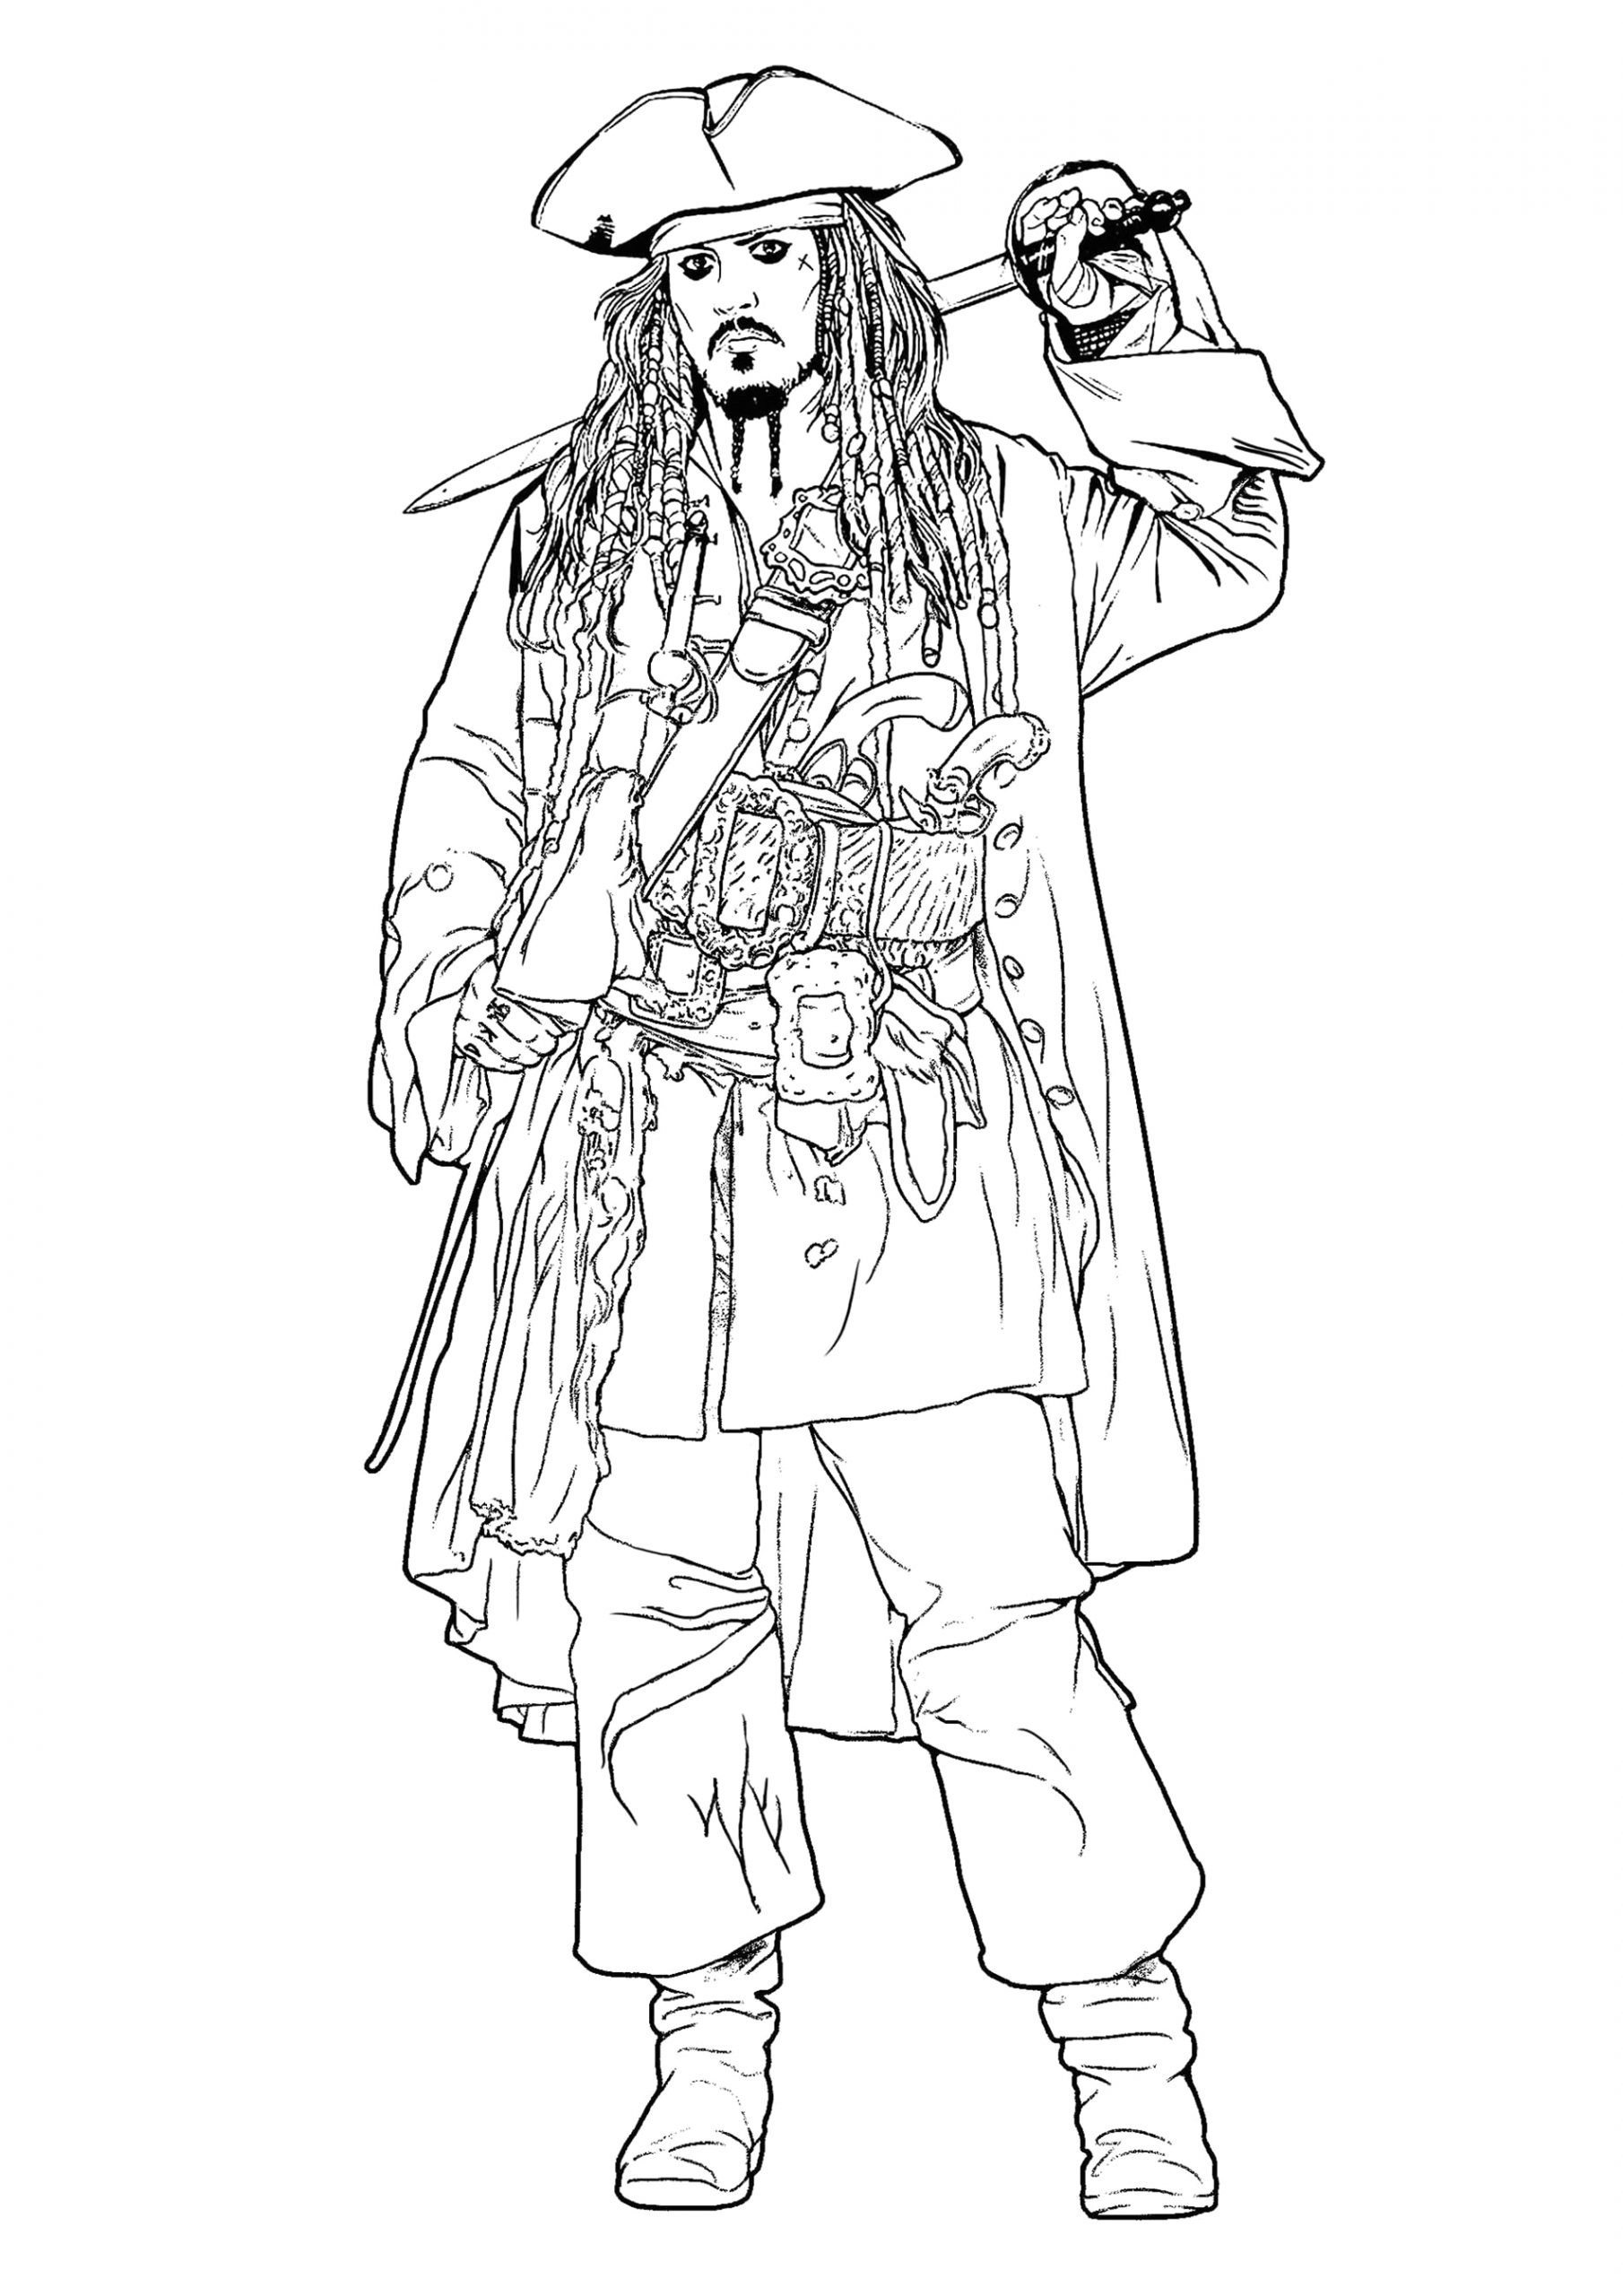 Pirates Of the Caribbean Coloring Pages to Print Pirates Of the Caribbean Free to Color for Kids Pirates